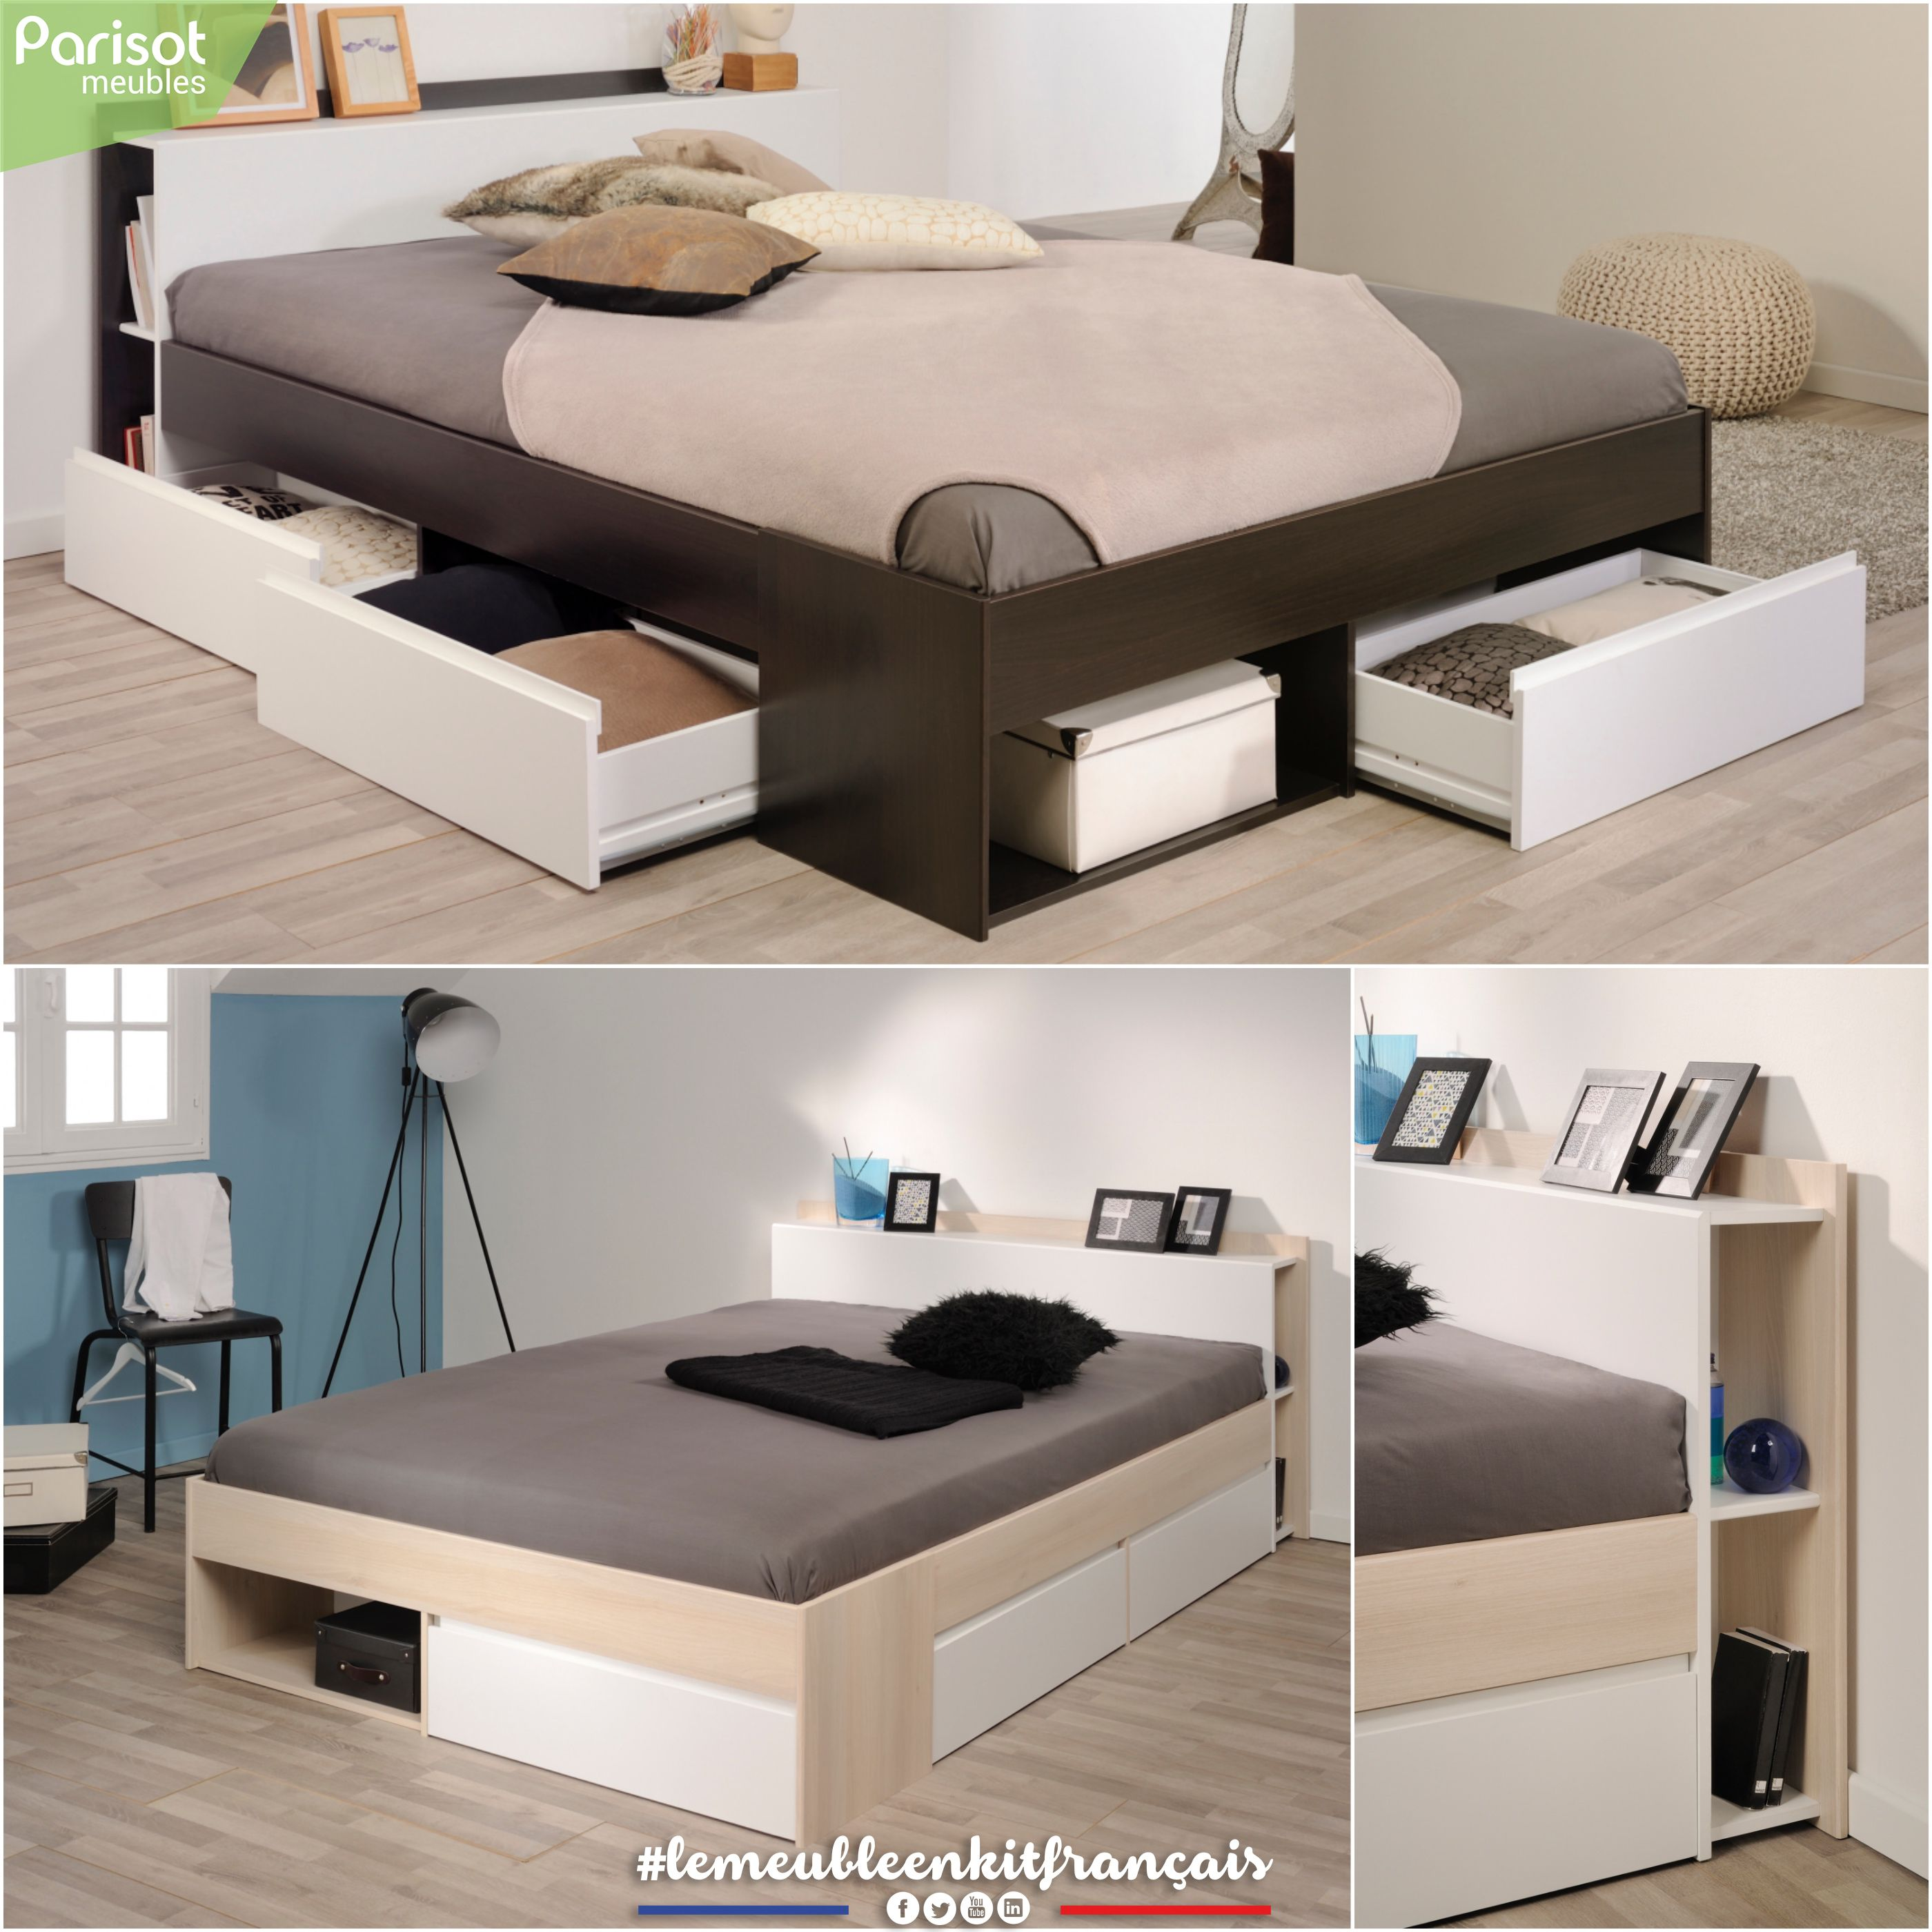 Most By Parisot Meubles Two Different Designs For The Bed Will Fit Perfectly With Our Neo And Carla Programs Lemeubleenkitfrancai Muebles Casas Habitacion